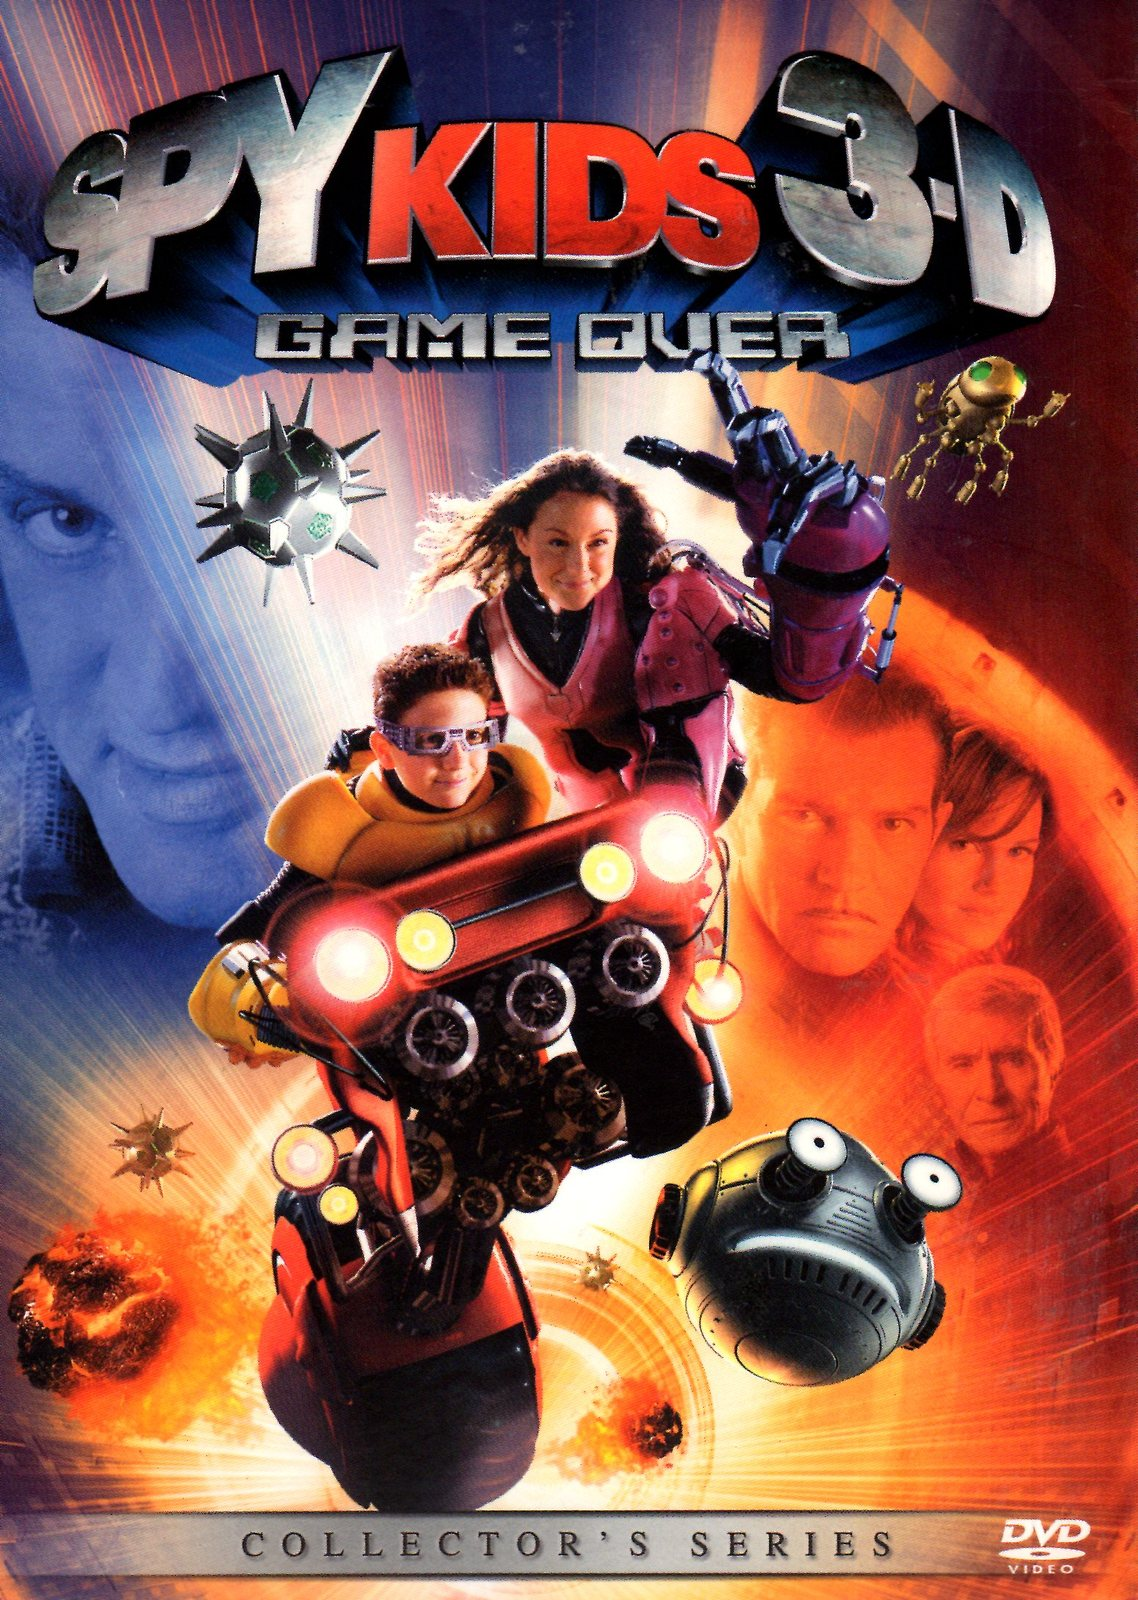 DVD- Spy Kids 3-D: Game Over DVD , Collector's Series